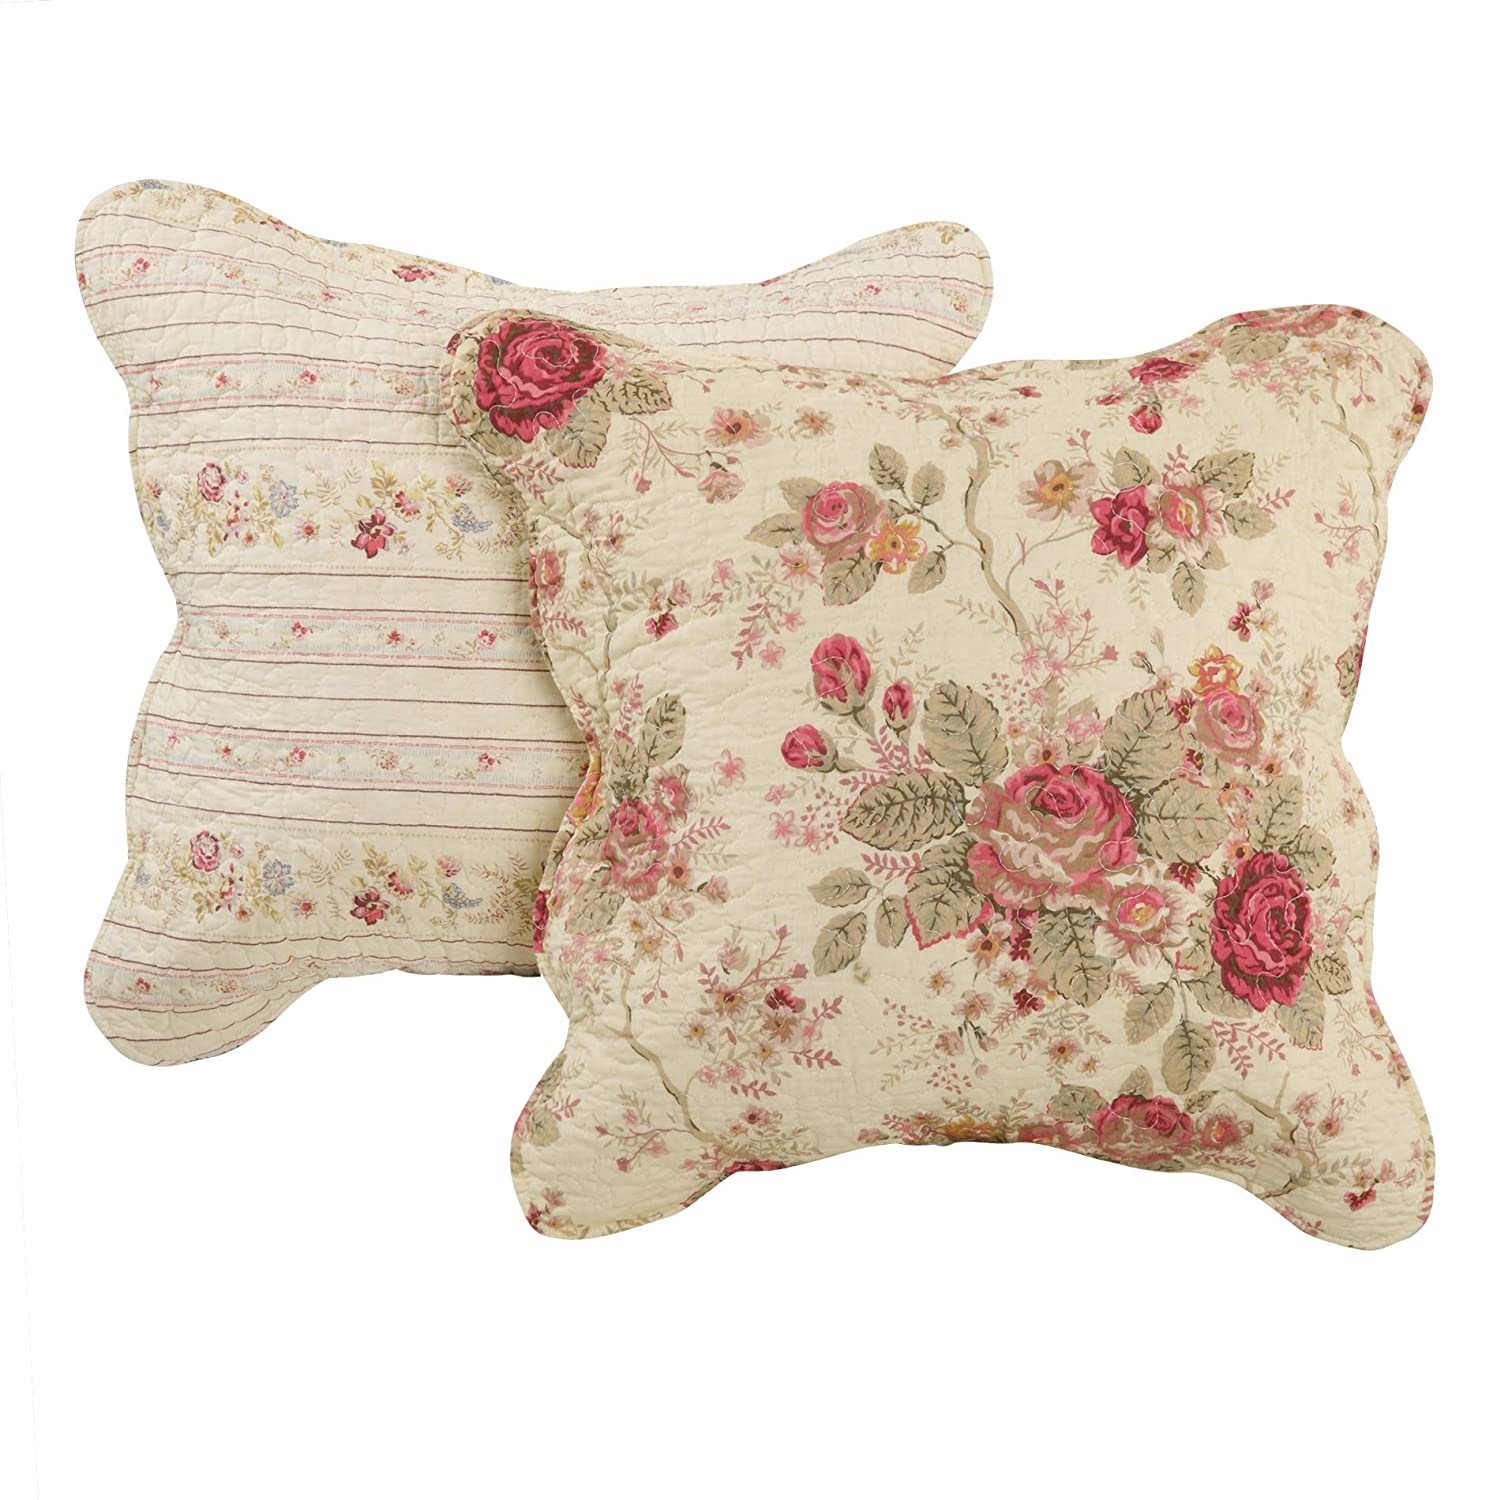 Greenland Home Antique Rose Dec. Pillow Pair Accessory-Multi, Multicolor